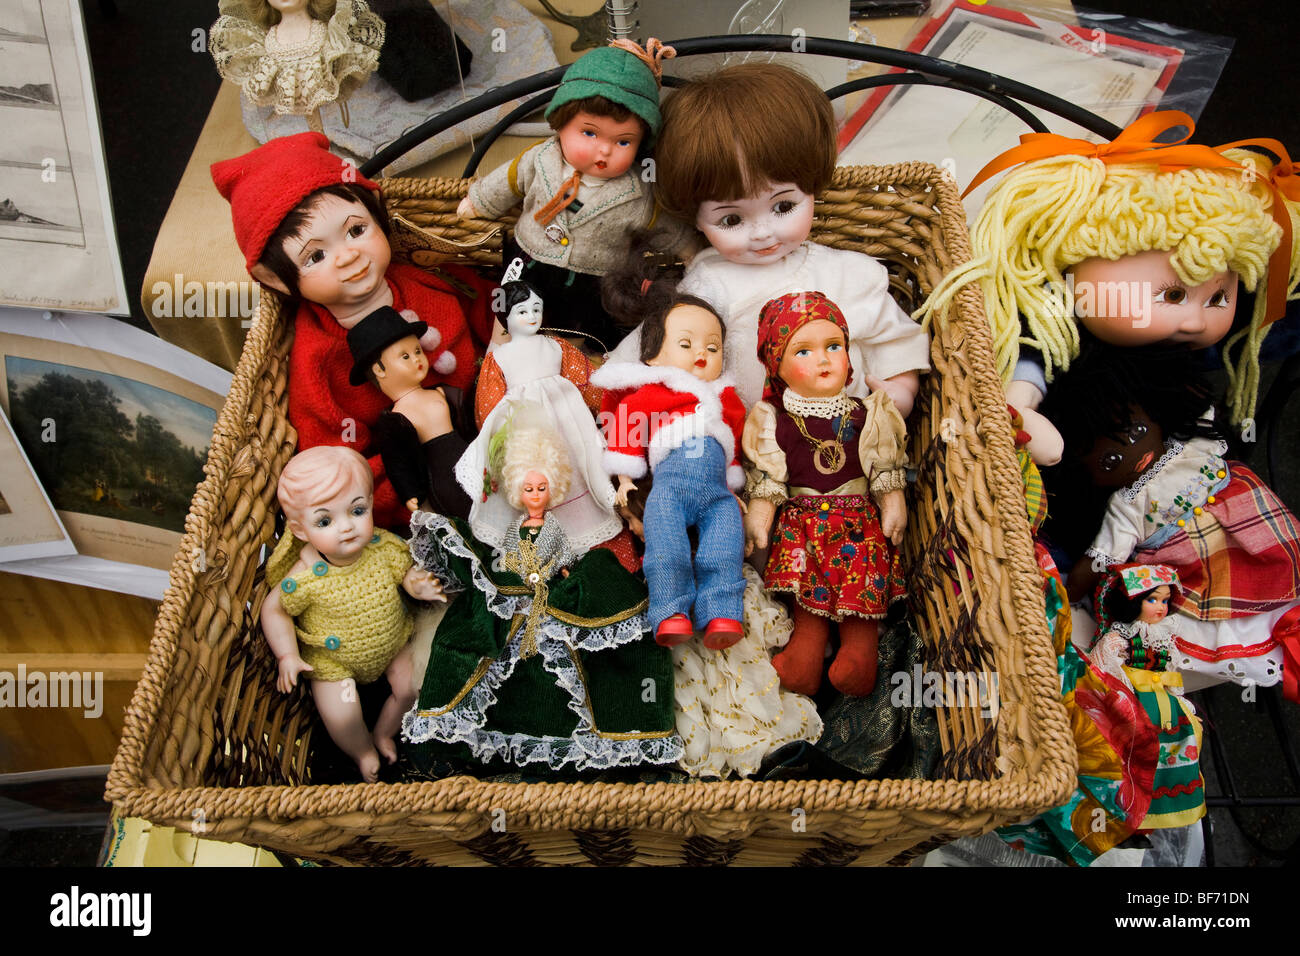 Antique dolls for sale at The Rose Bowl Swap Meet, Pasadena, California, United States of America Stock Photo